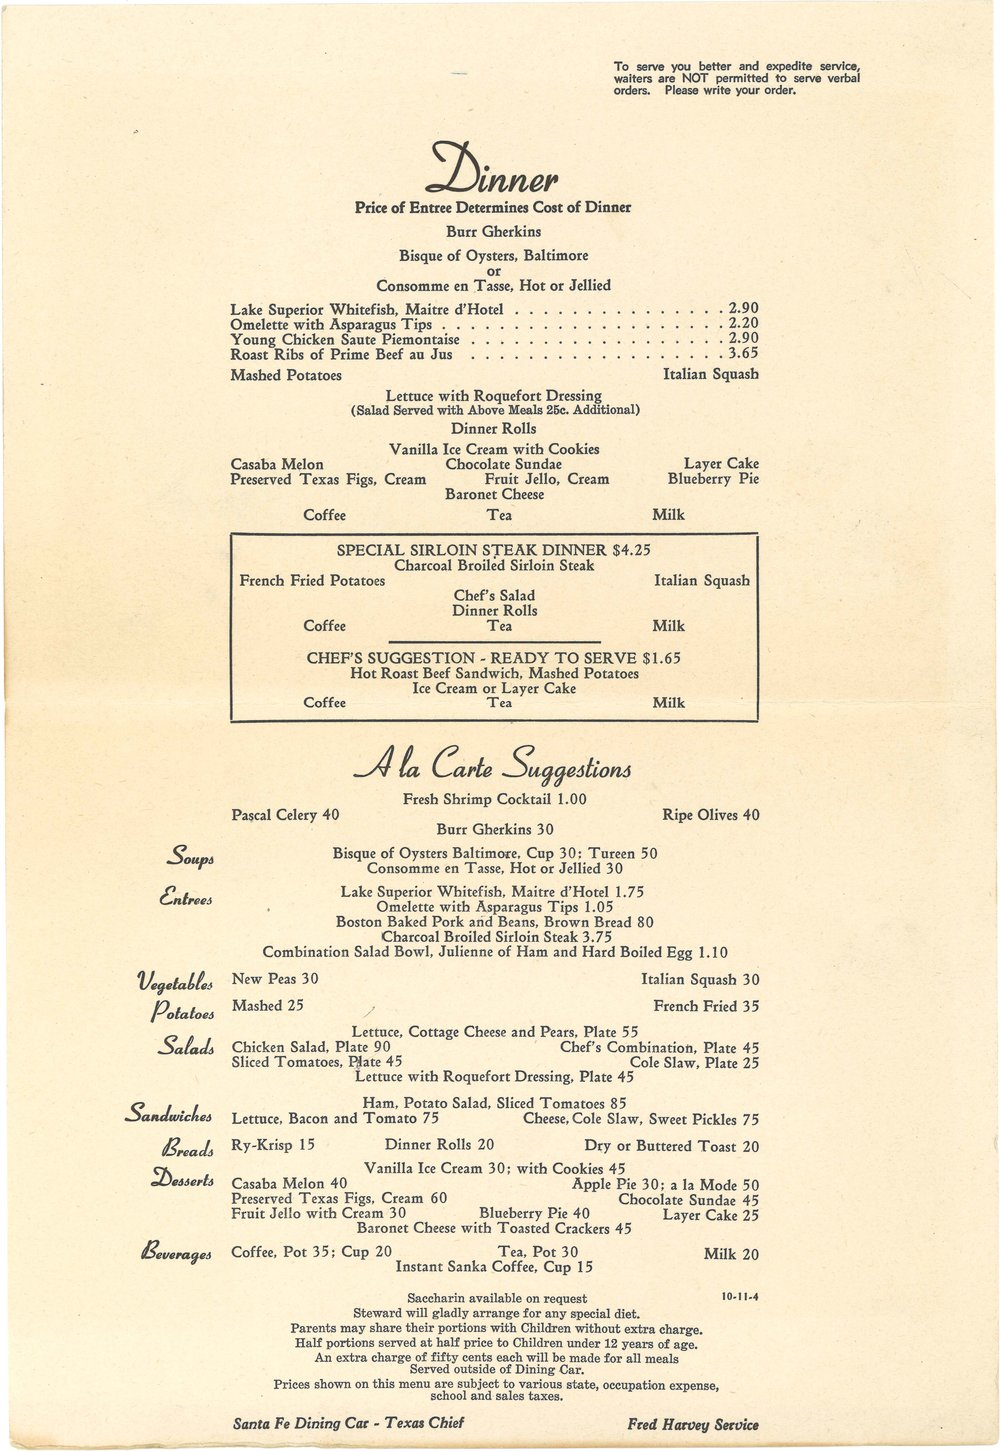 Santa Fe Meeting of the Chiefs Dinner Menu2 cropped small.jpg